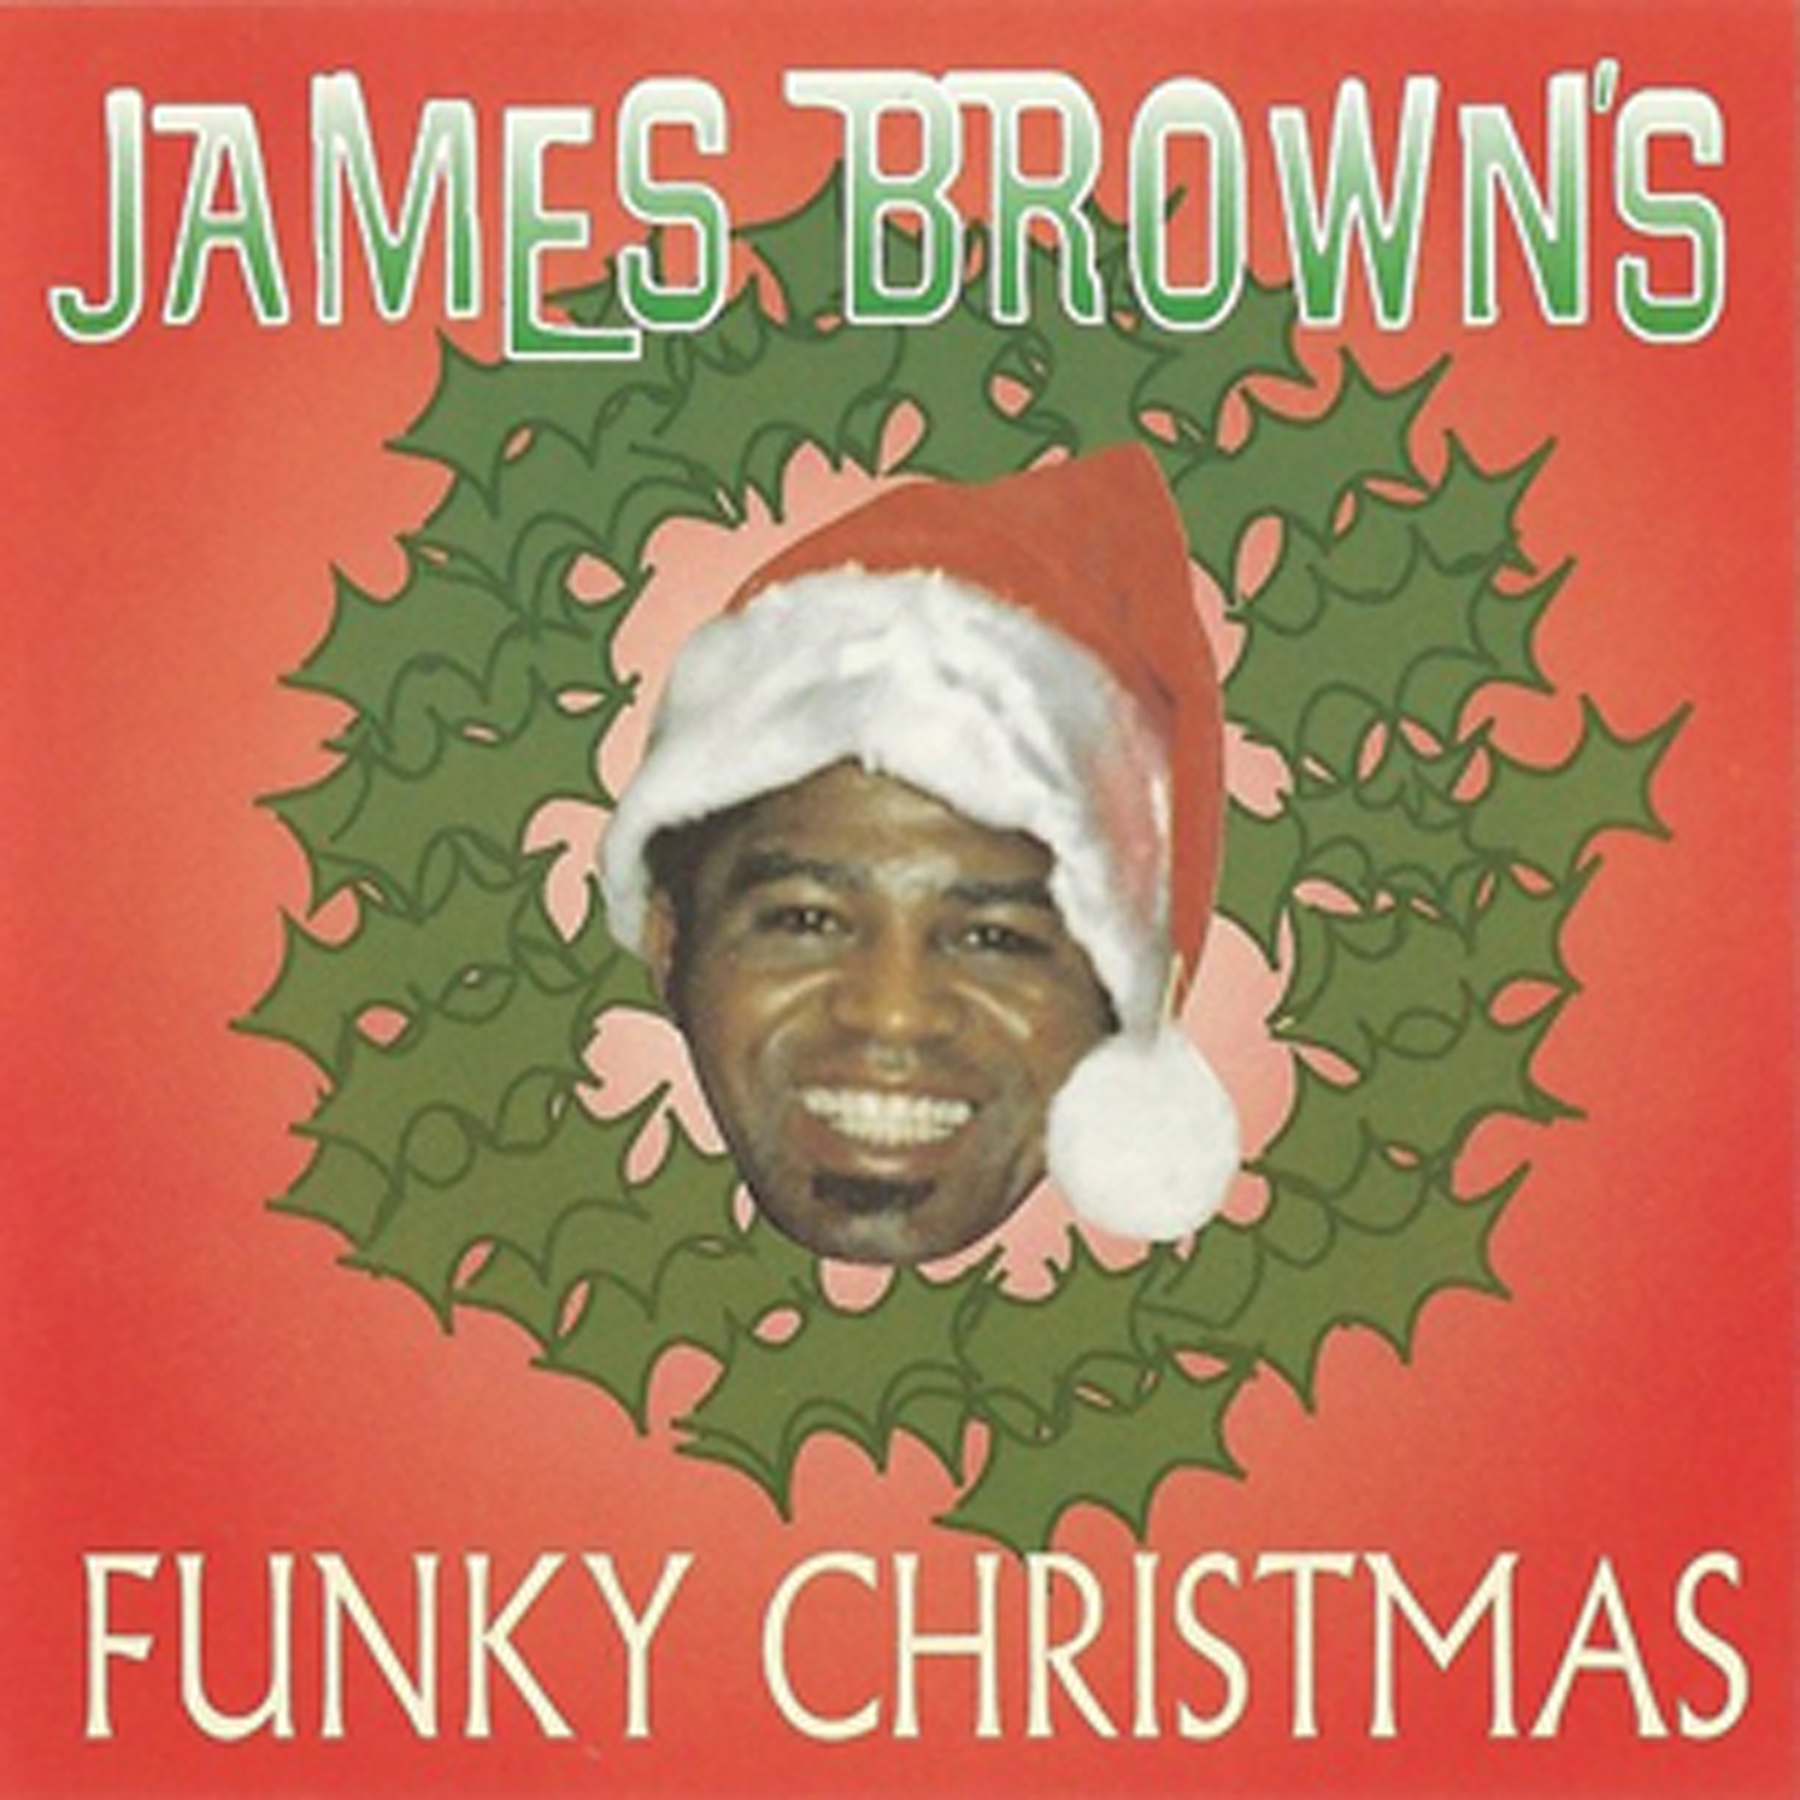 James Brown, Funky Christmas